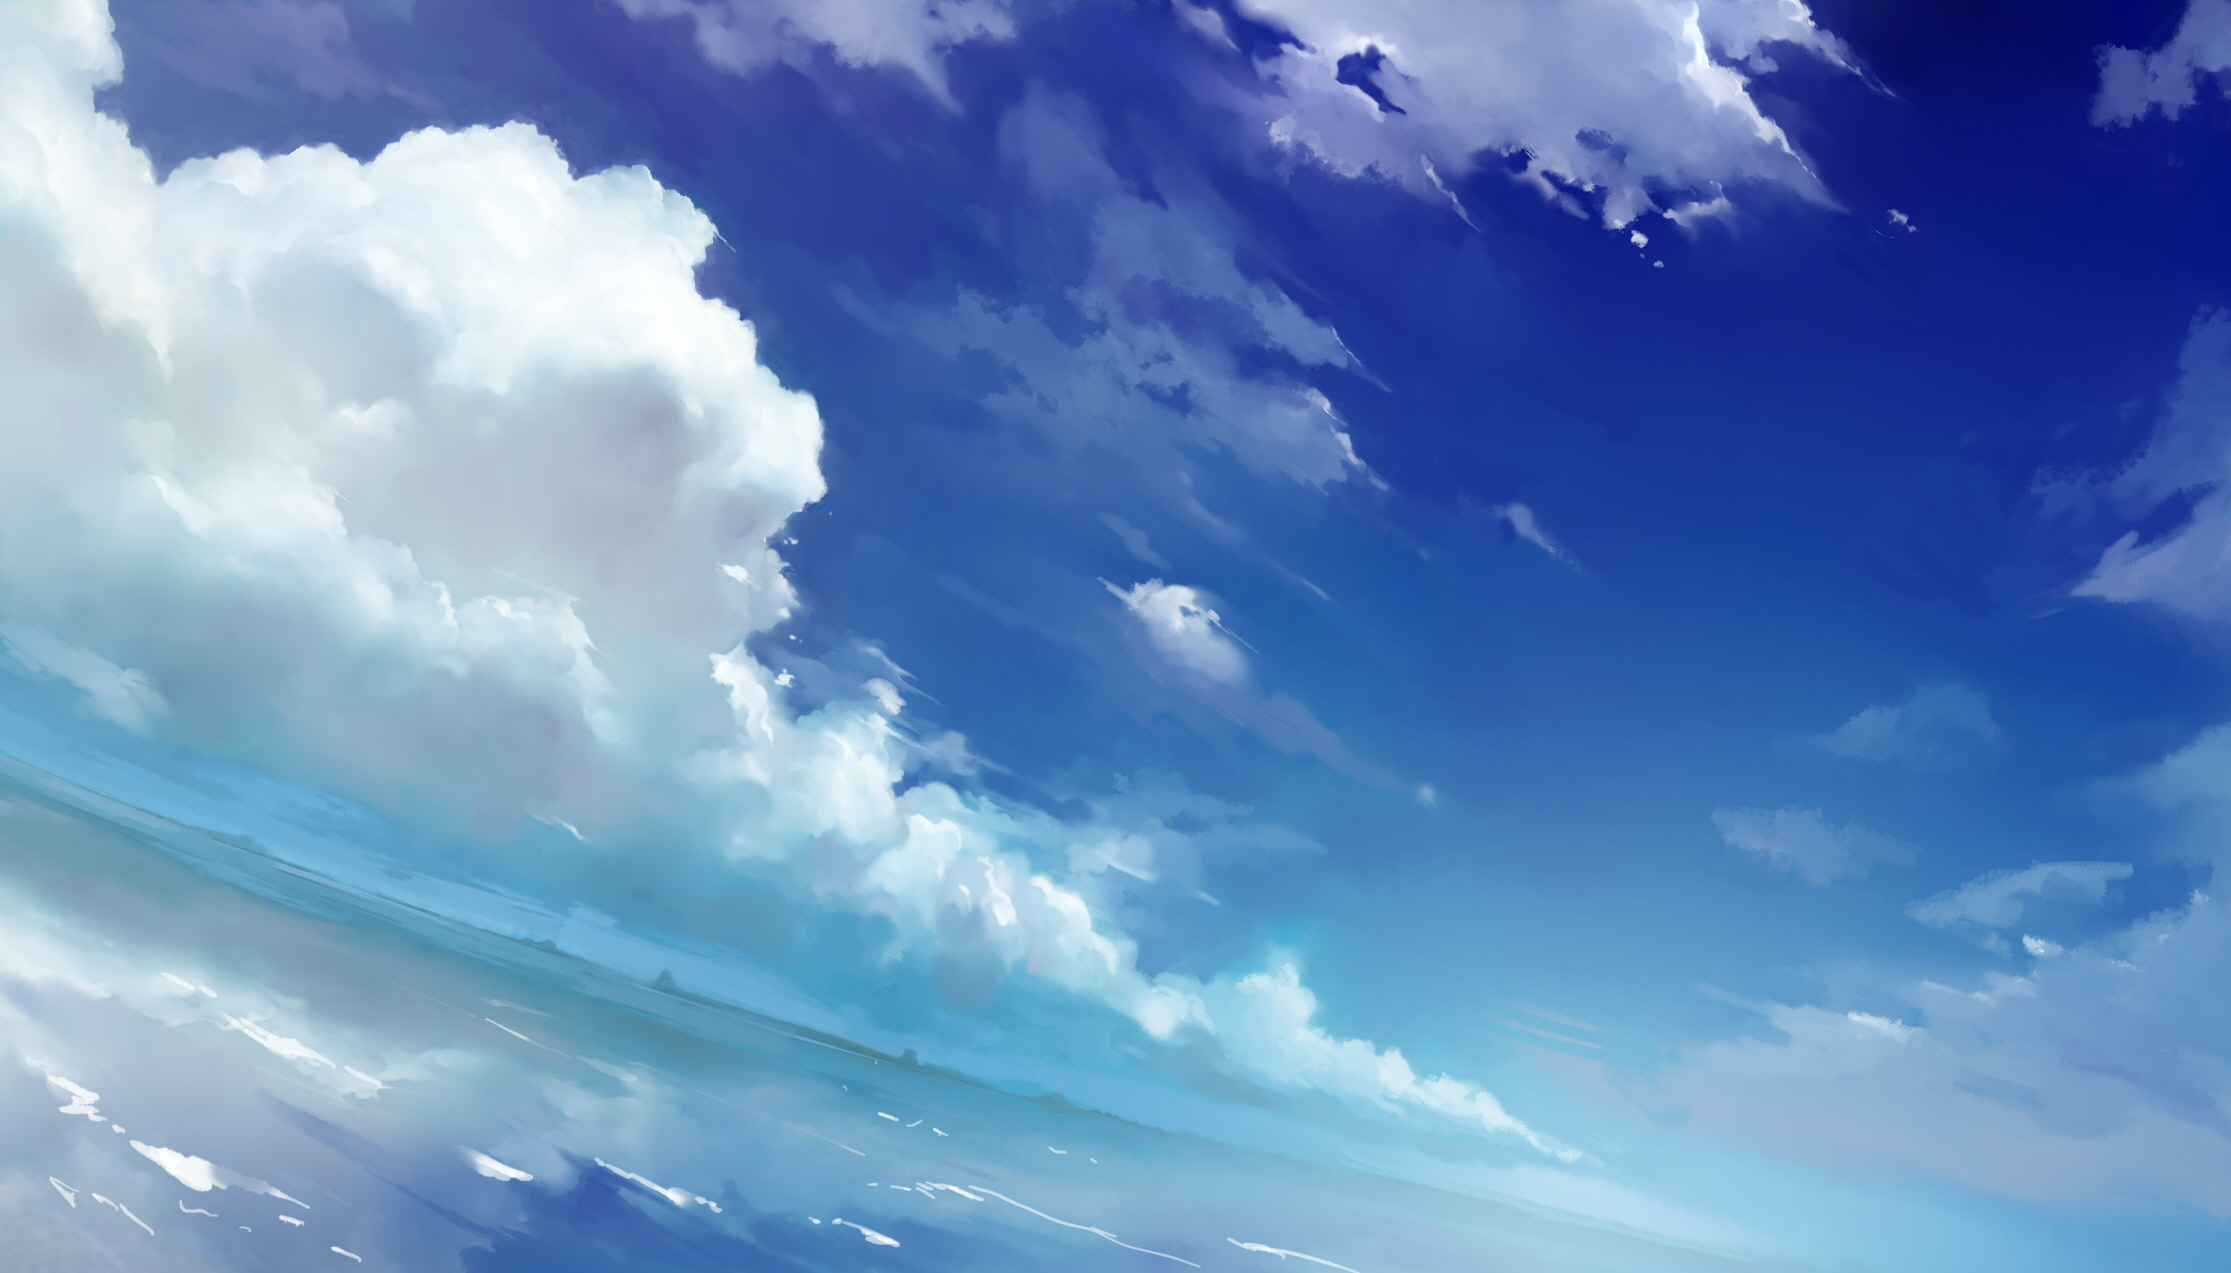 Sky Anime Anime Sky And Clouds Wallpaper 2231x1273 Id 51390